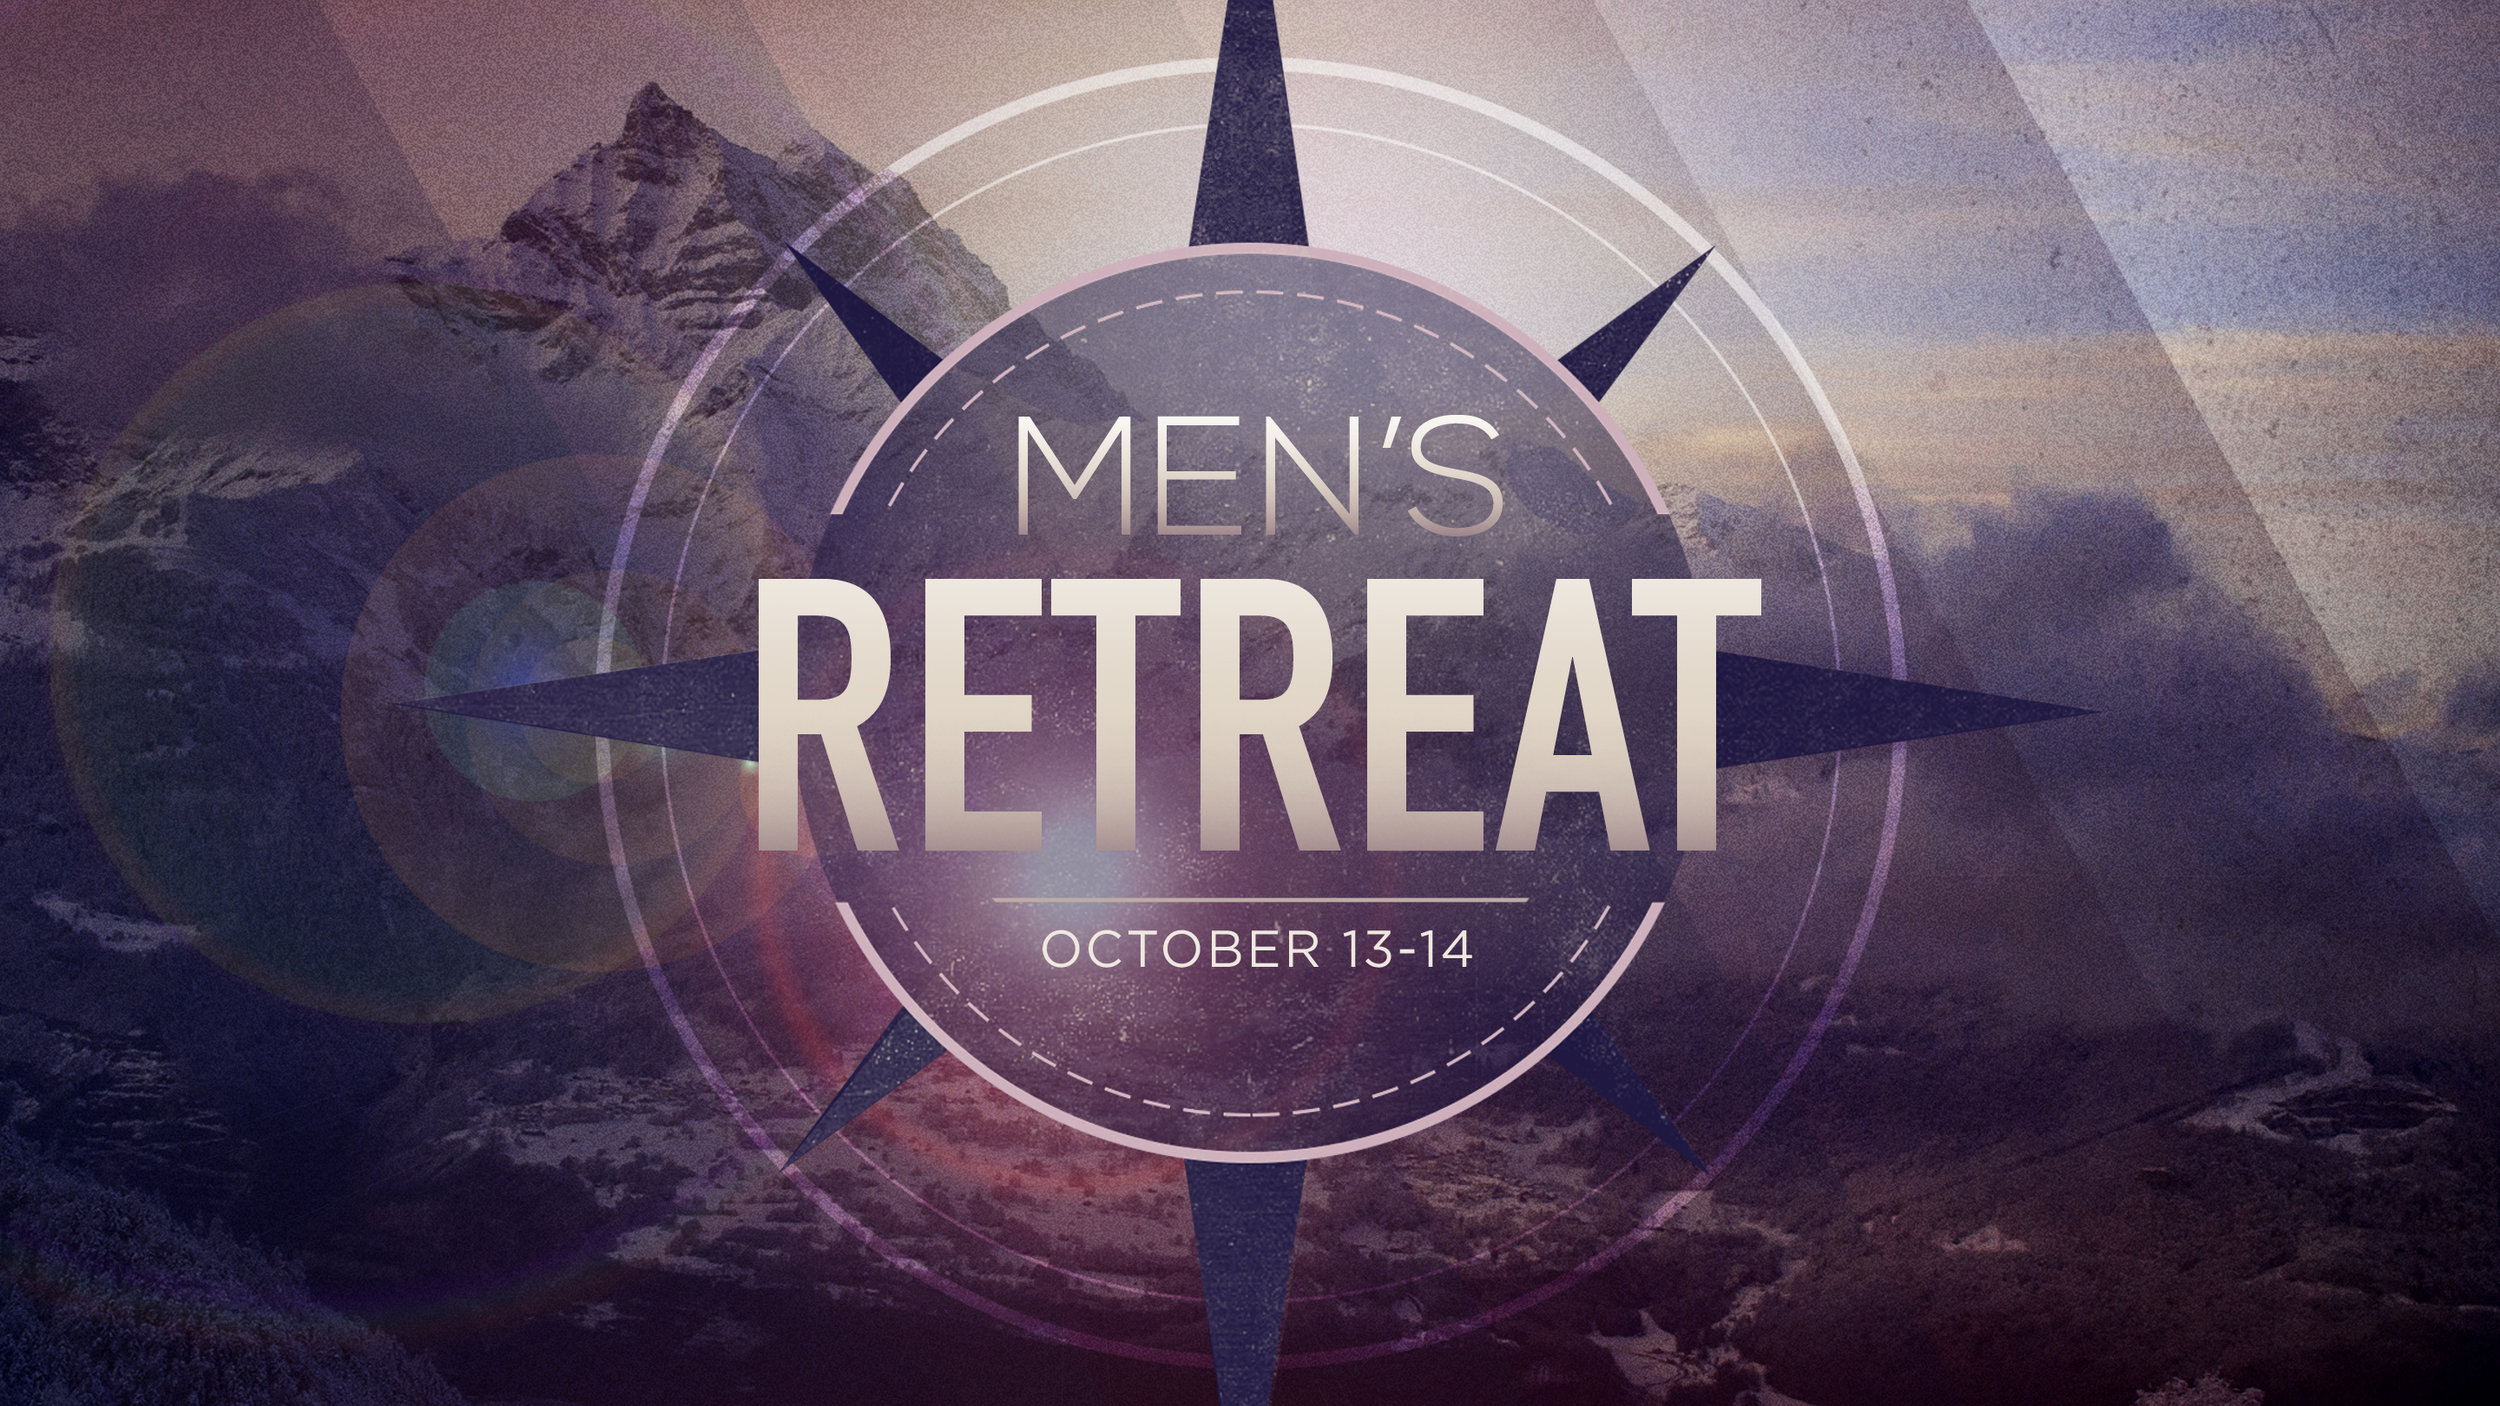 Men's Retreat 2017.jpg